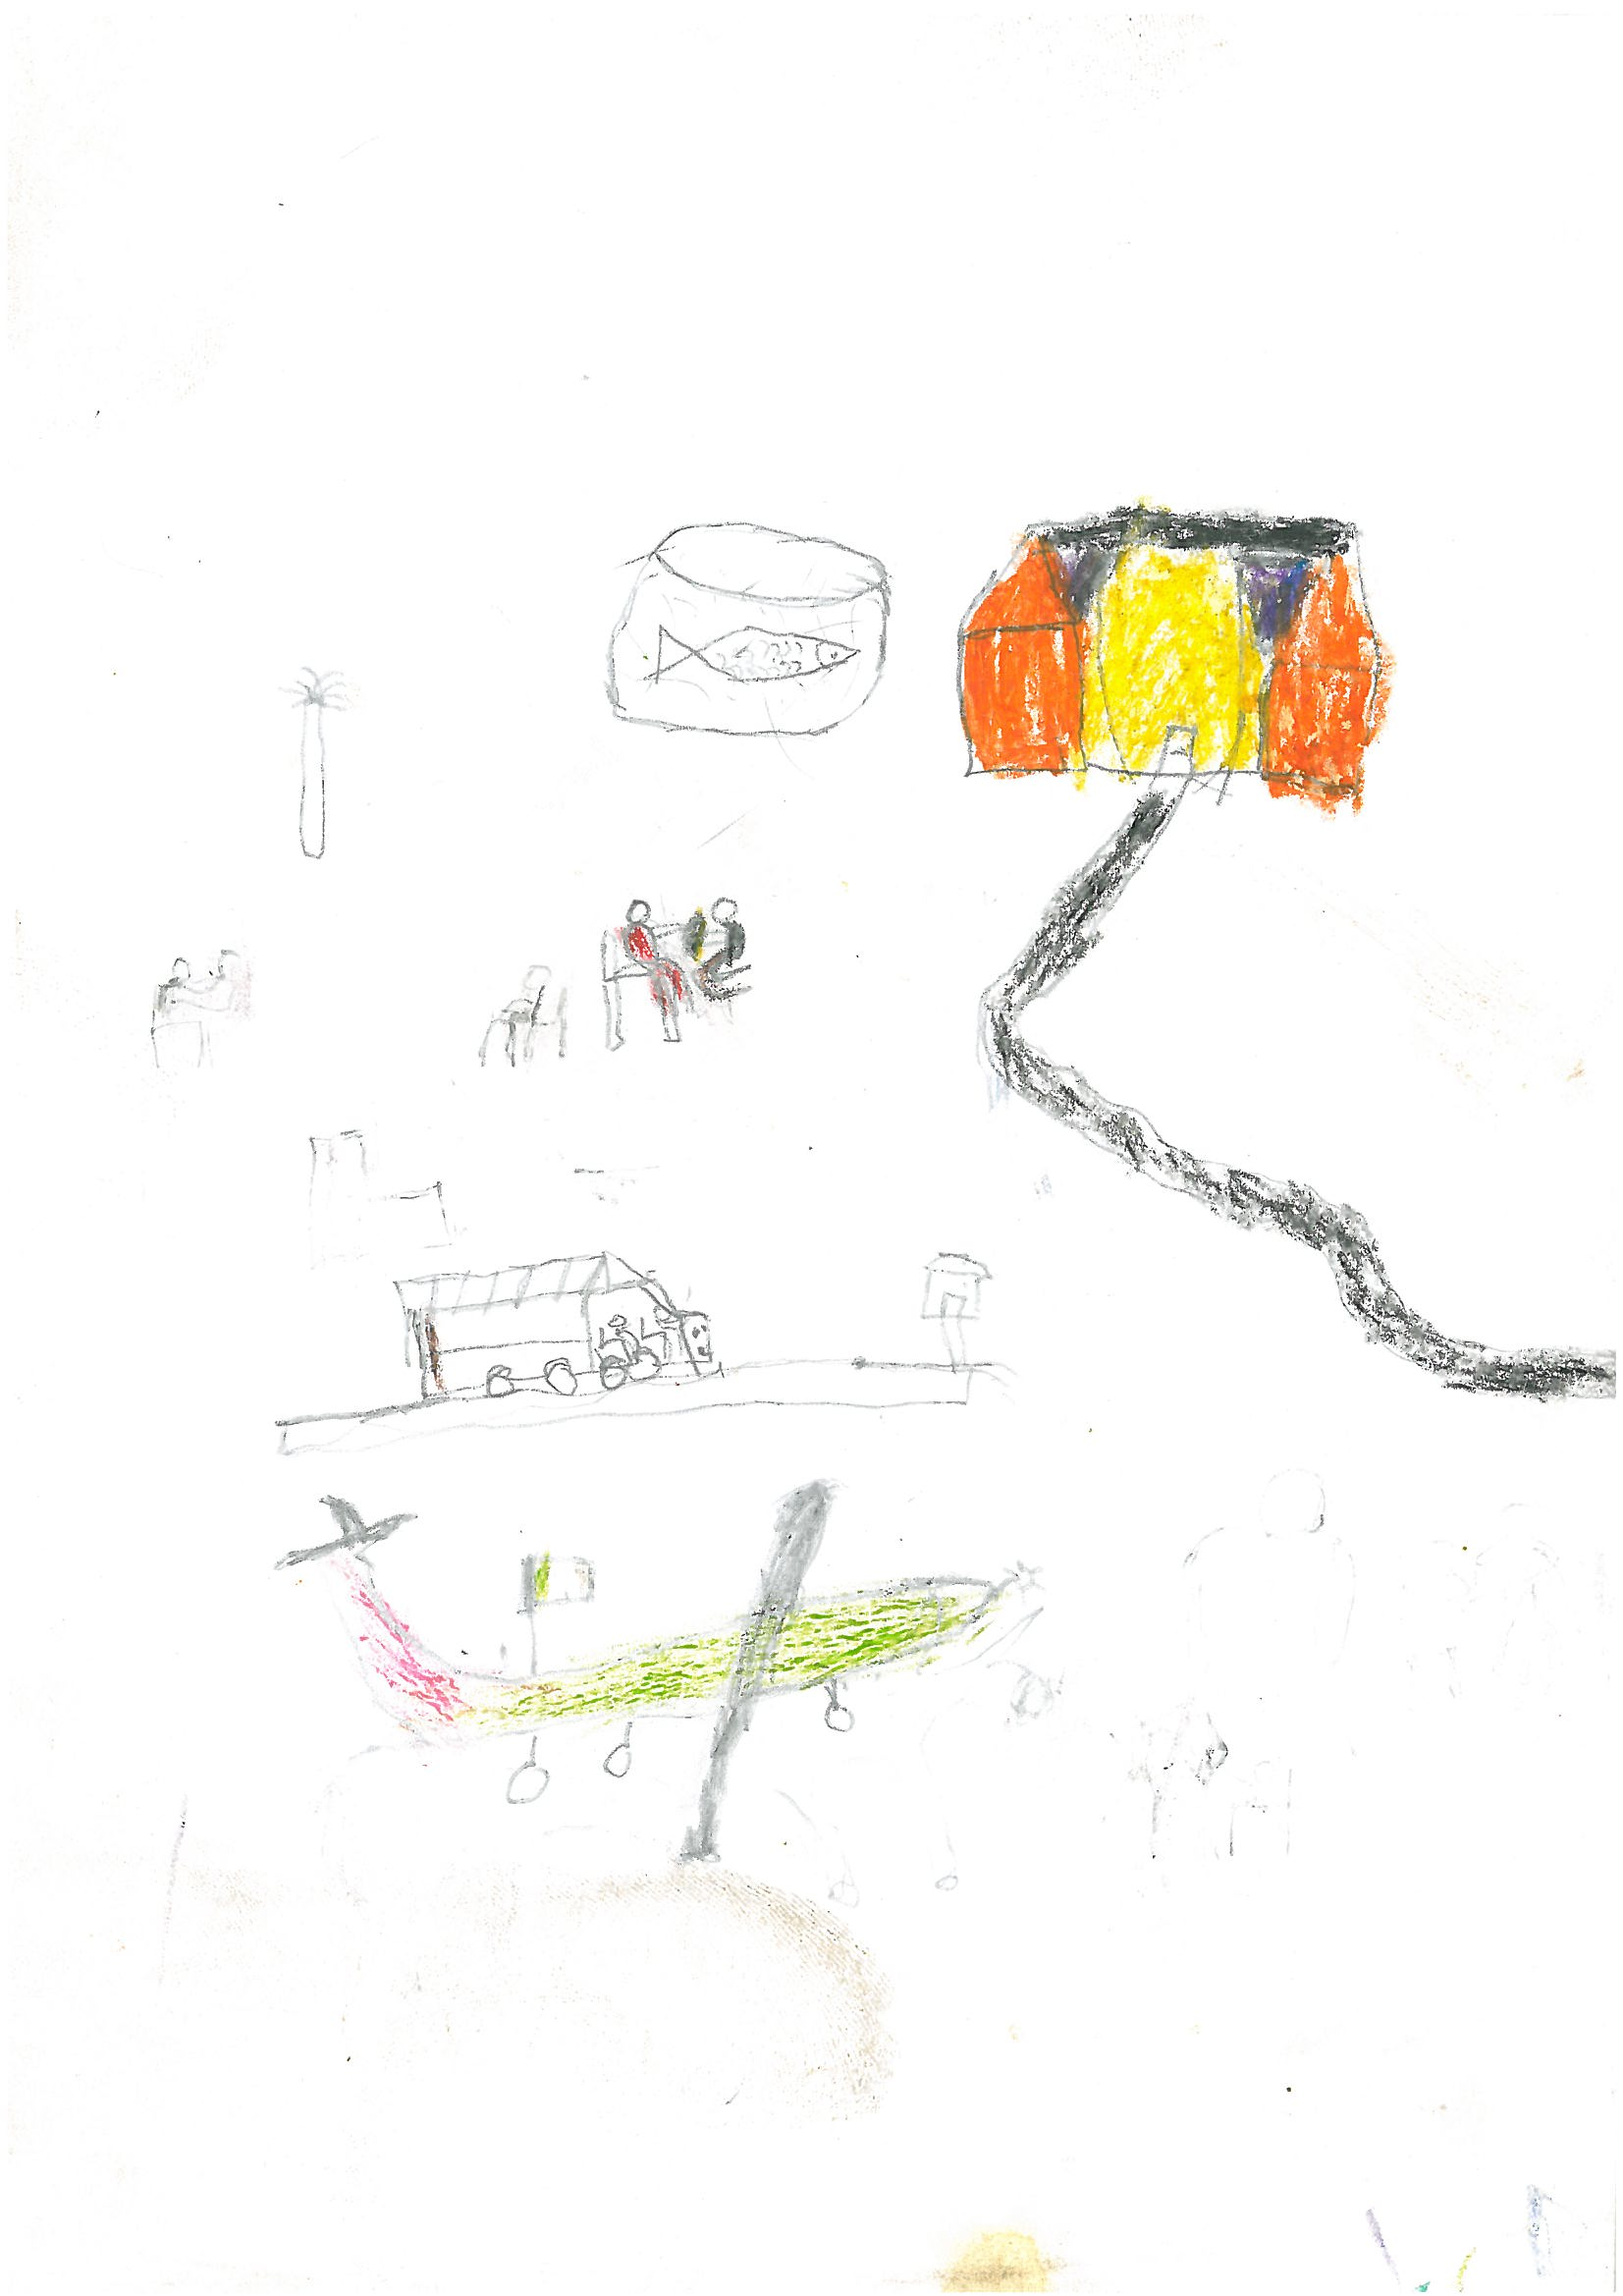 Luka featured Paul's airplane in his own drawing of taking care of a sick person. Luka also drew a fish for his father to eat and scenes of giving his father medicine and taking his father by bus to the clinic